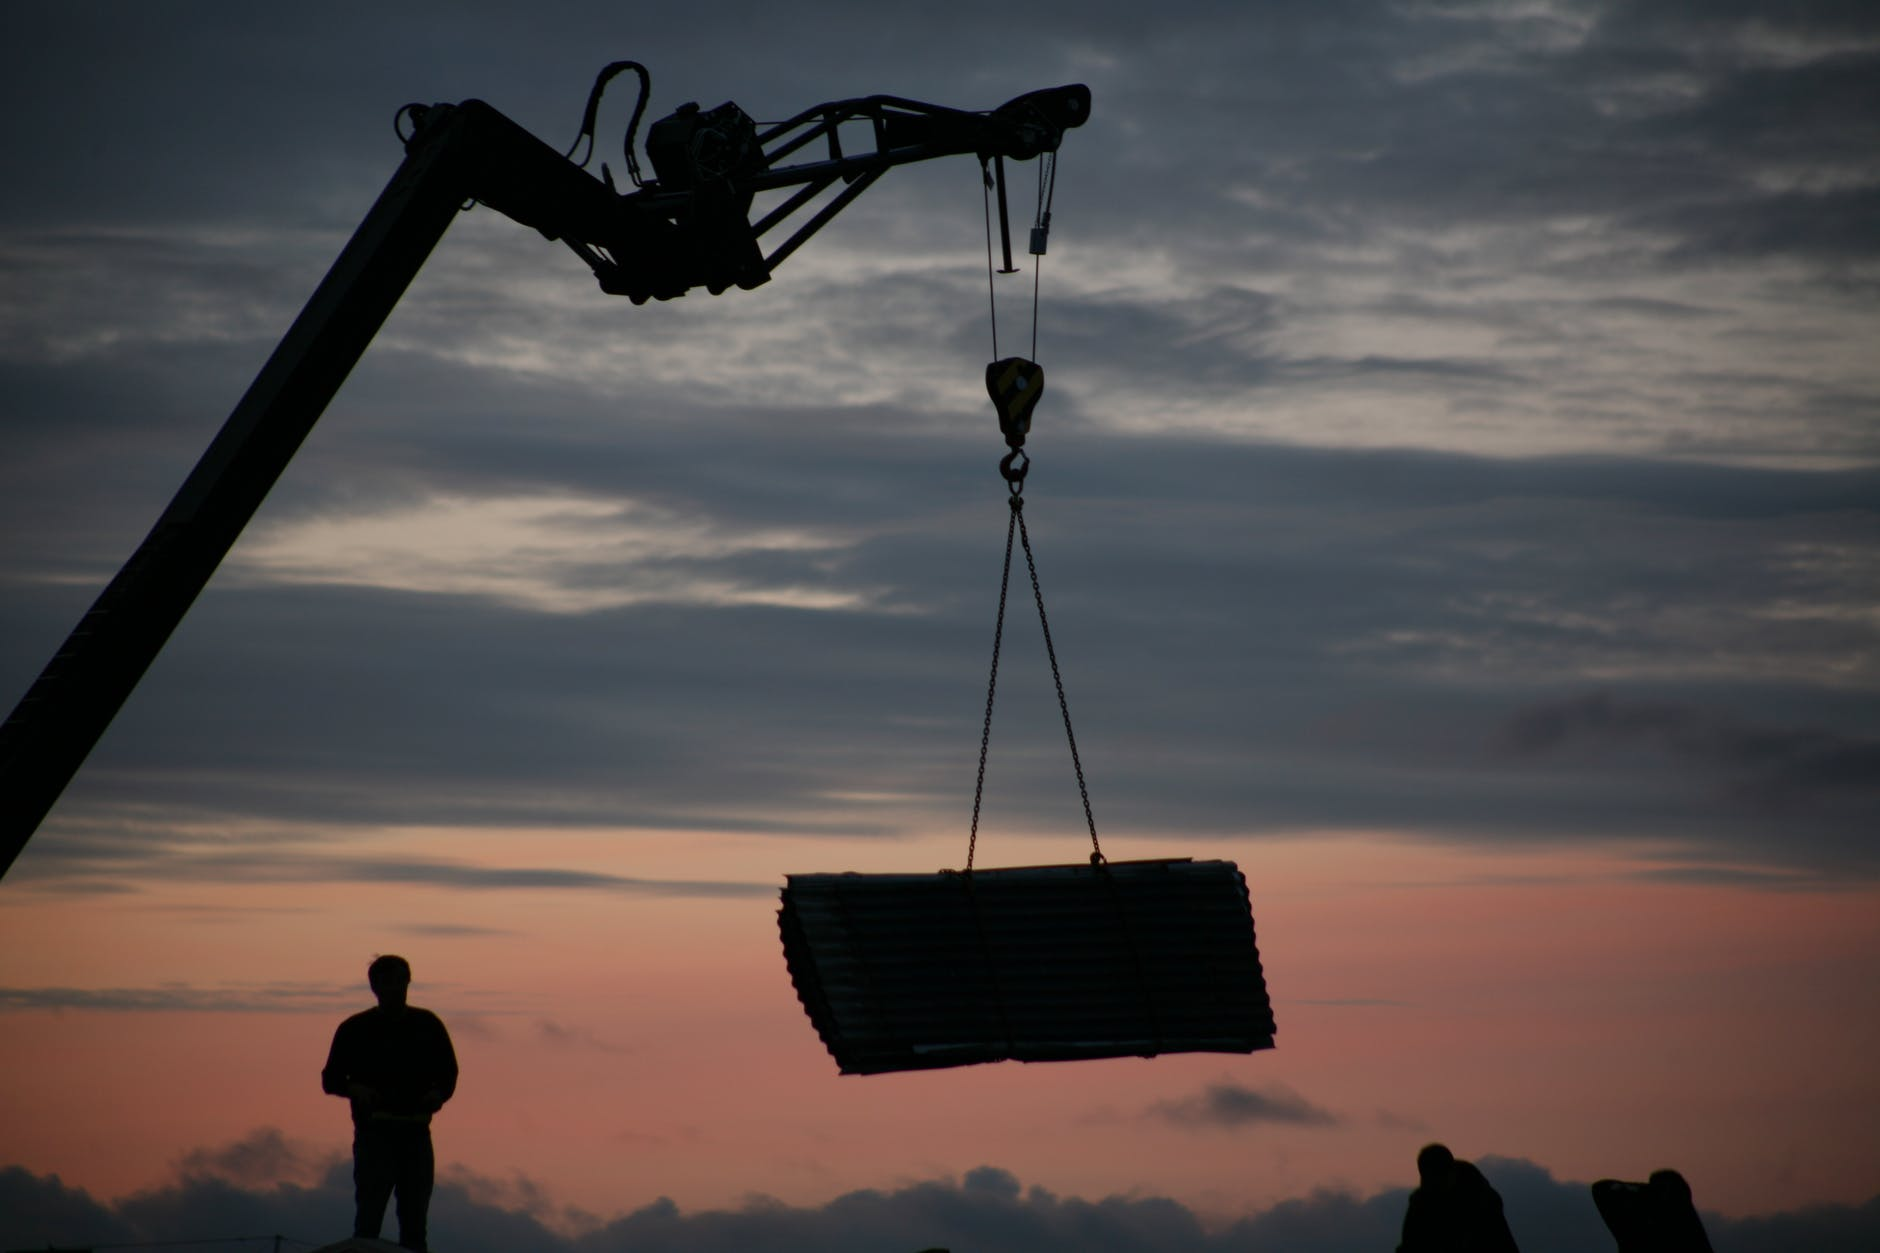 crane lifting concrete layer near silhouettes of workmen at sunset